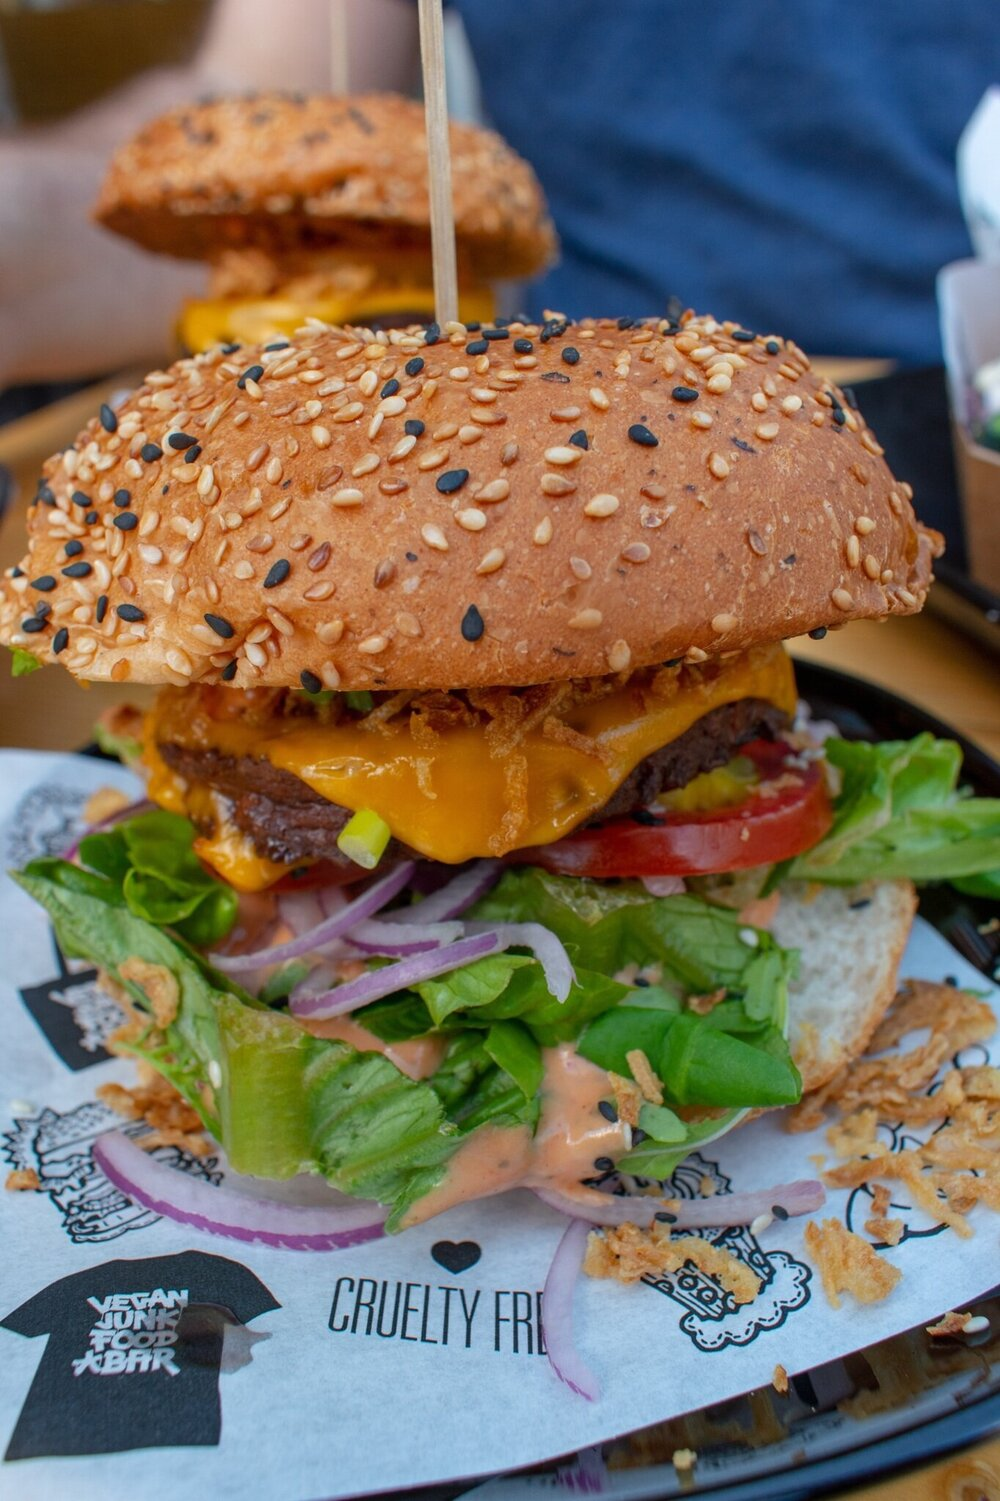 Uprooted-Traveler-Amsterdam-sumo-burger-vegan-junk-food-bar-guide.jpg